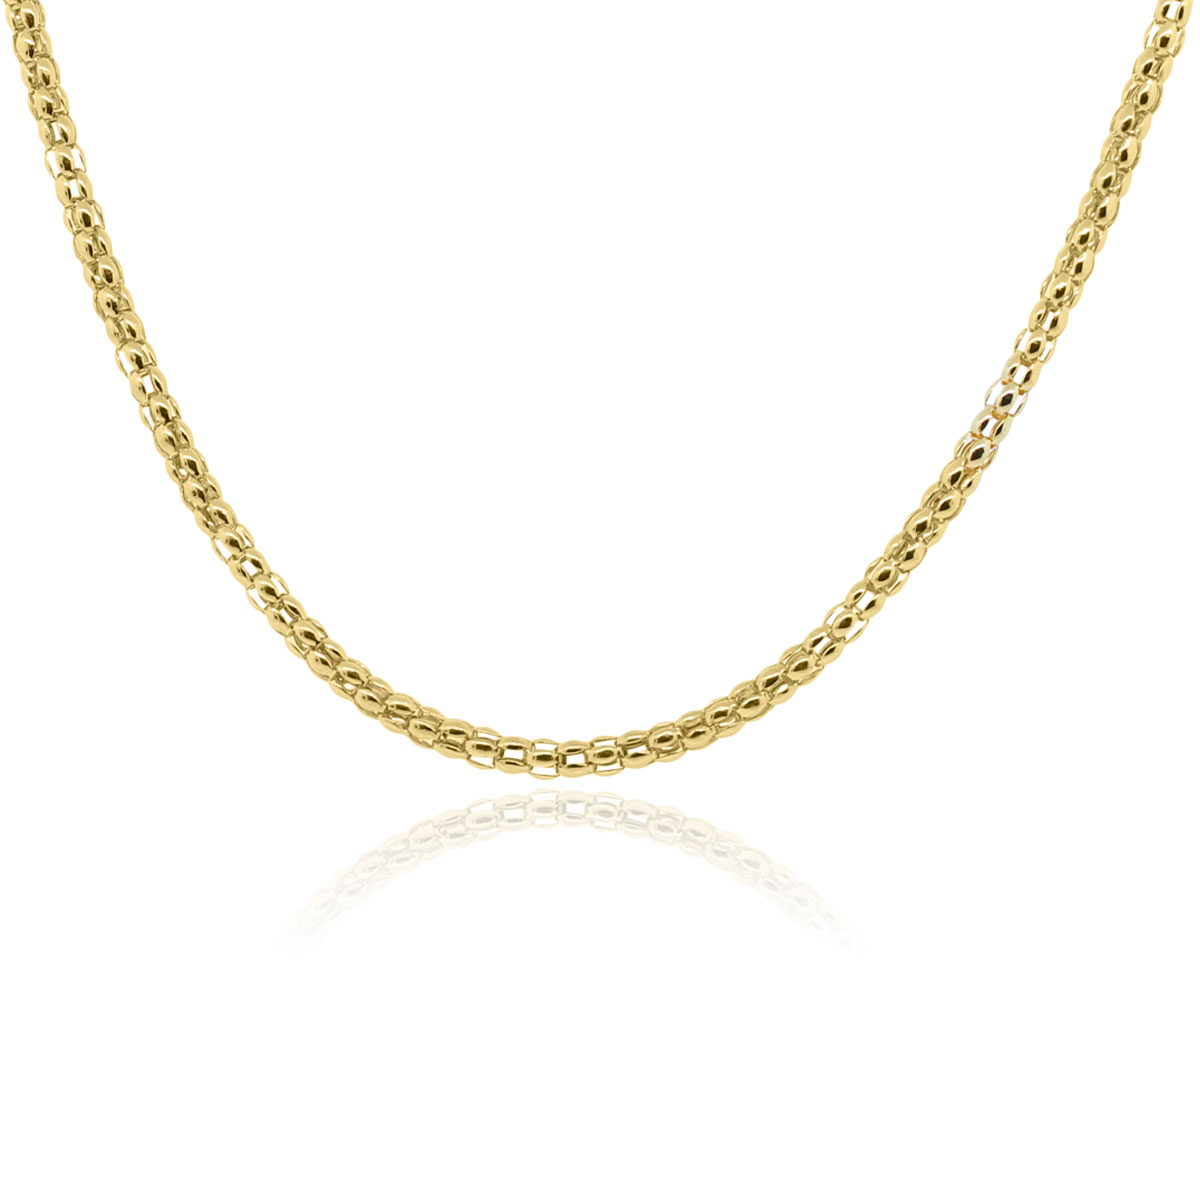 """18k Yellow Gold Thick Chain 20.5"""" Necklace"""